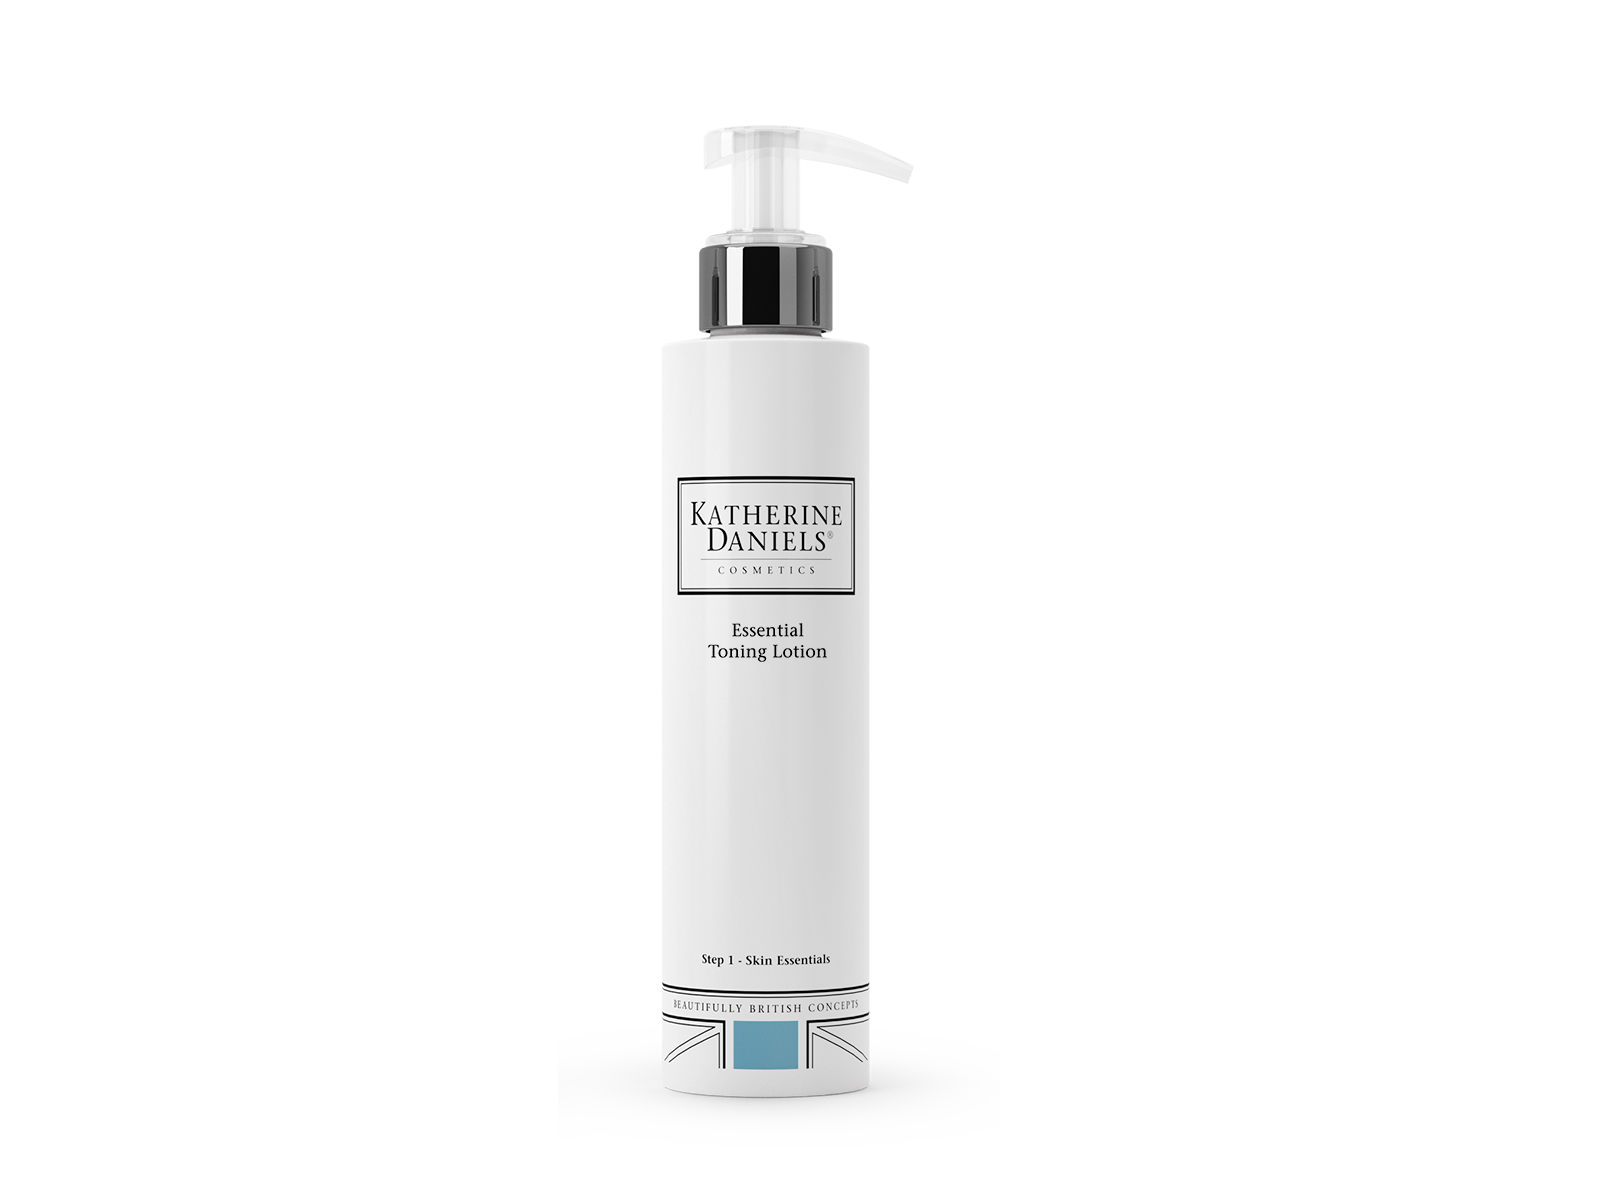 HOW TO USE - After cleansing with Katherine Daniels Essential Cleansing Milk. Apply 2-3 pumps to a cotton wool pad, thoroughly wipe over your cleansed skin. Pat your skin dry with a clean towel or tissue.